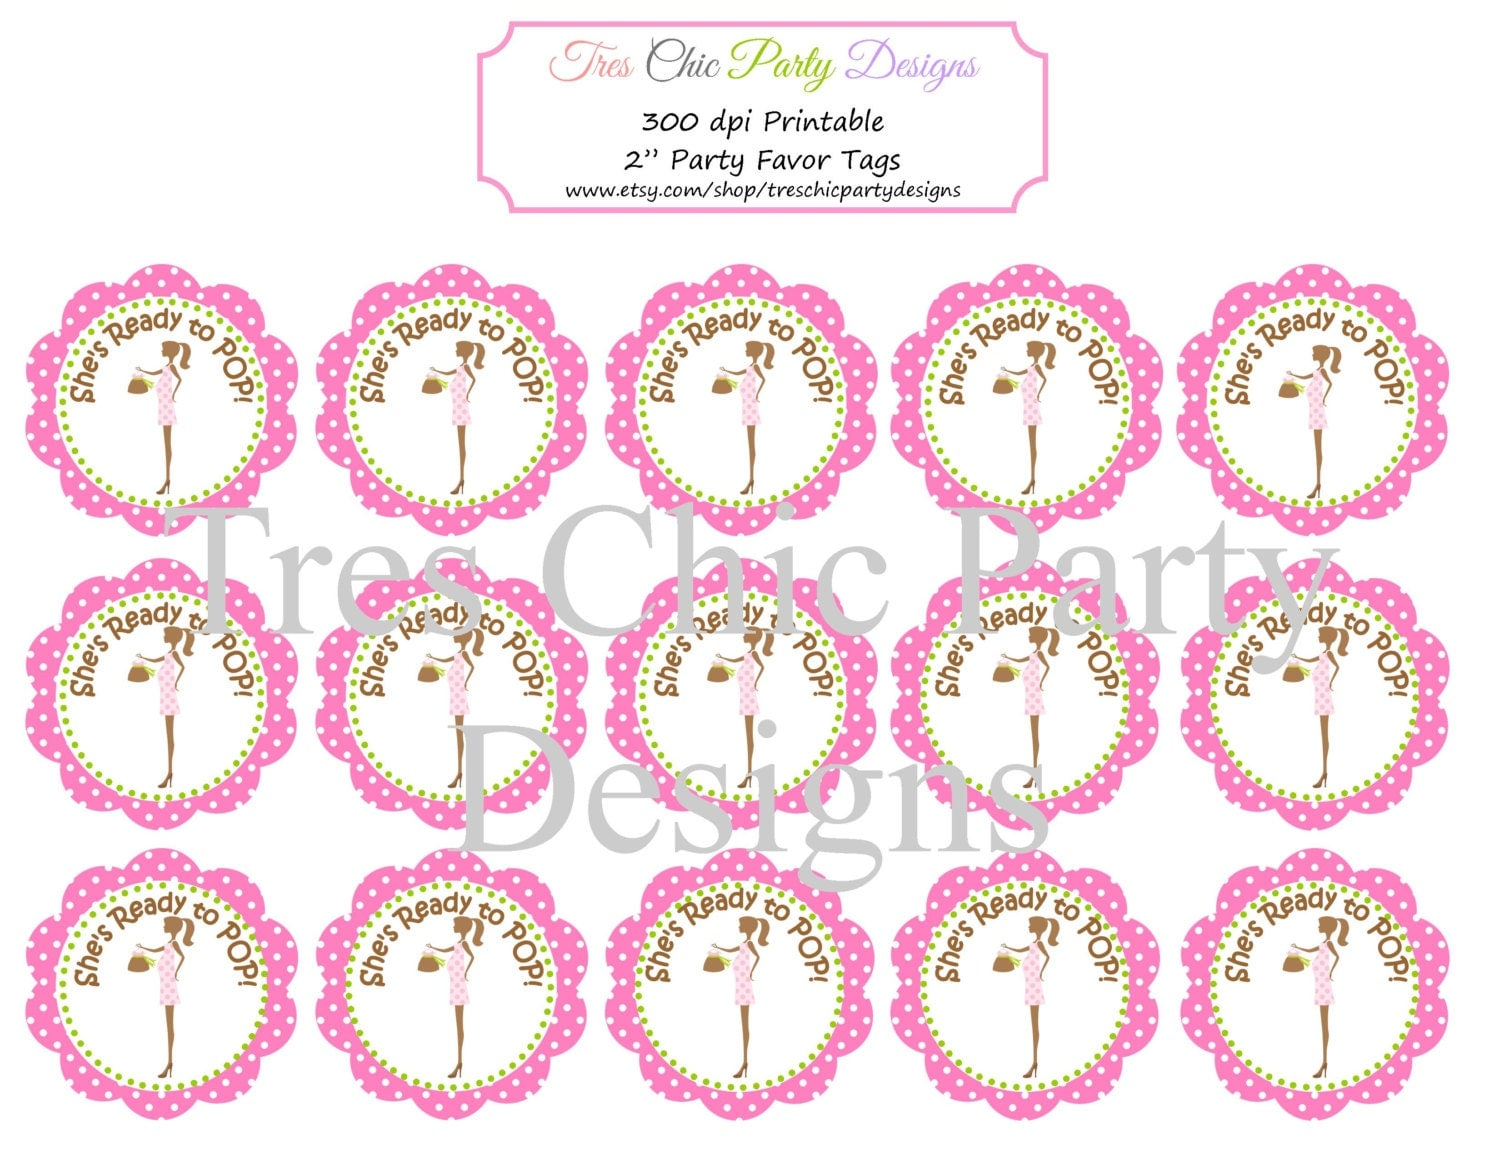 ready to pop stickers template - ready to pop tags about to pop tags ready to pop instant